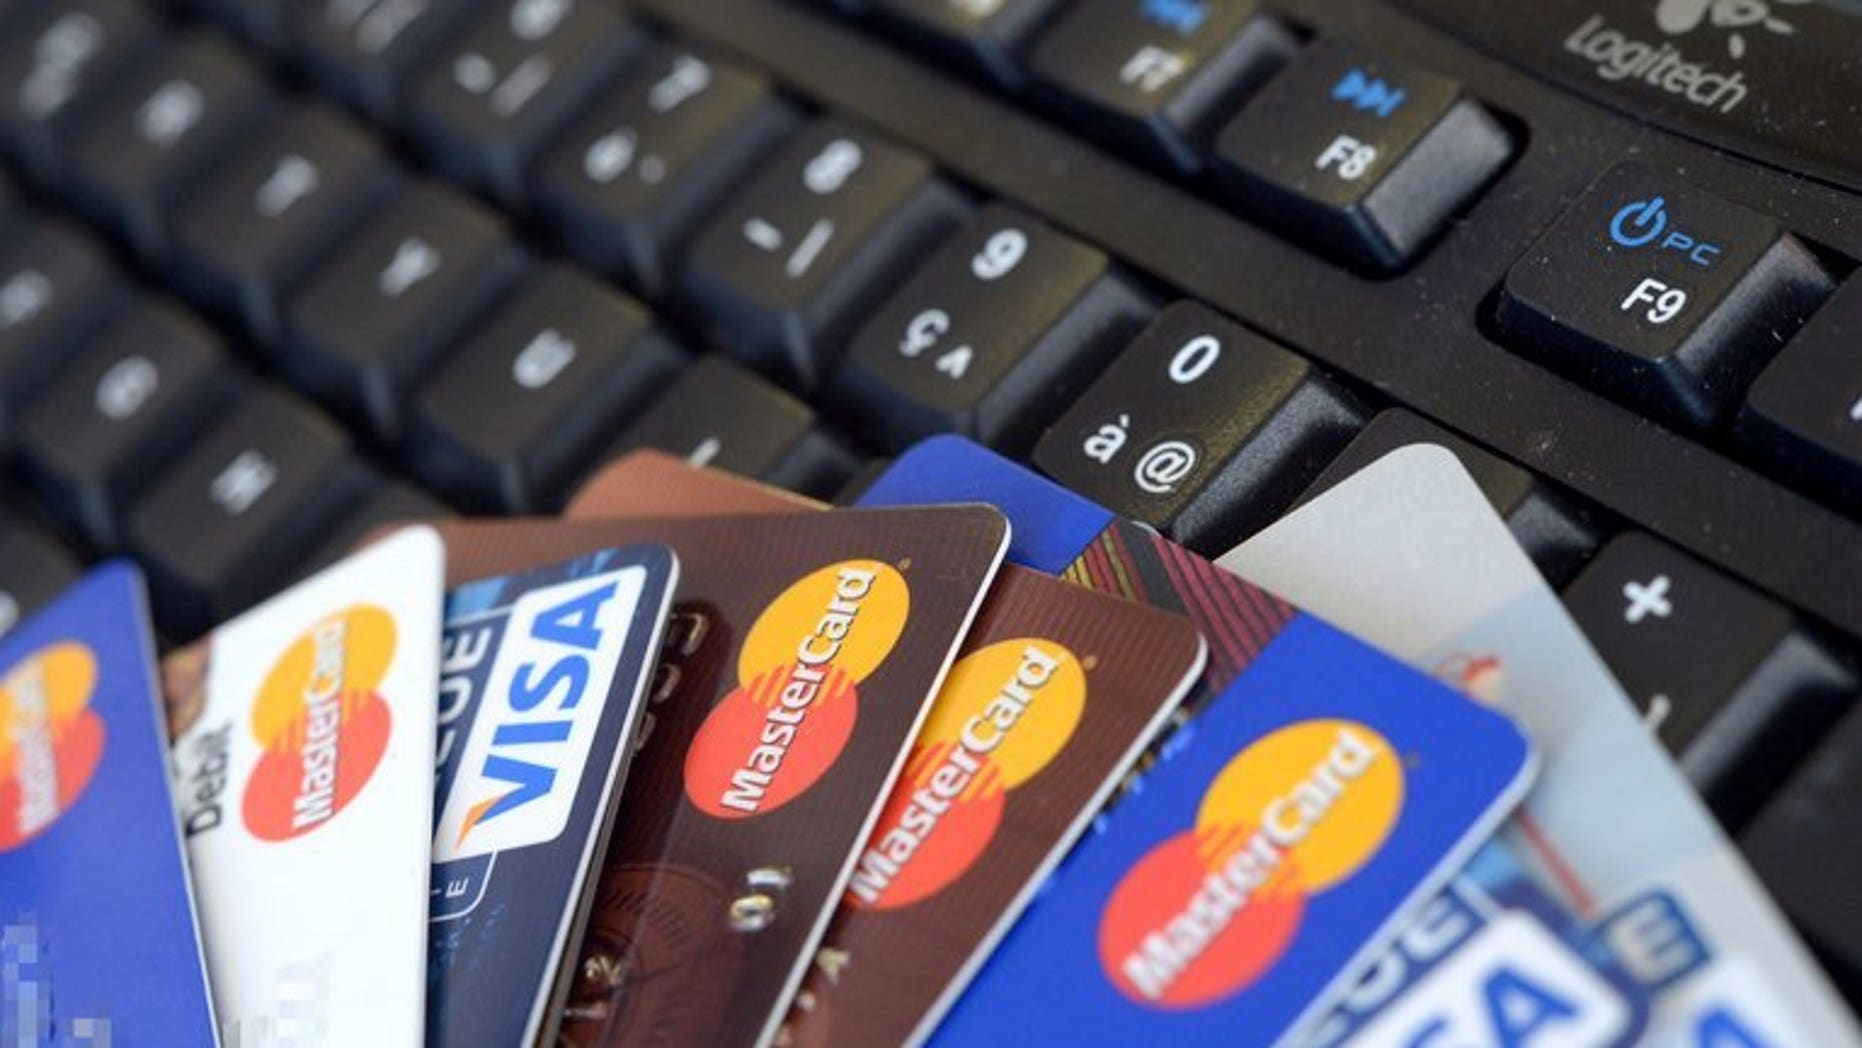 Four Canadians have been arrested in Costa Rica after being caught with more than 200 false credit cards and electronic equipment to forge them, authorities said Thursday.